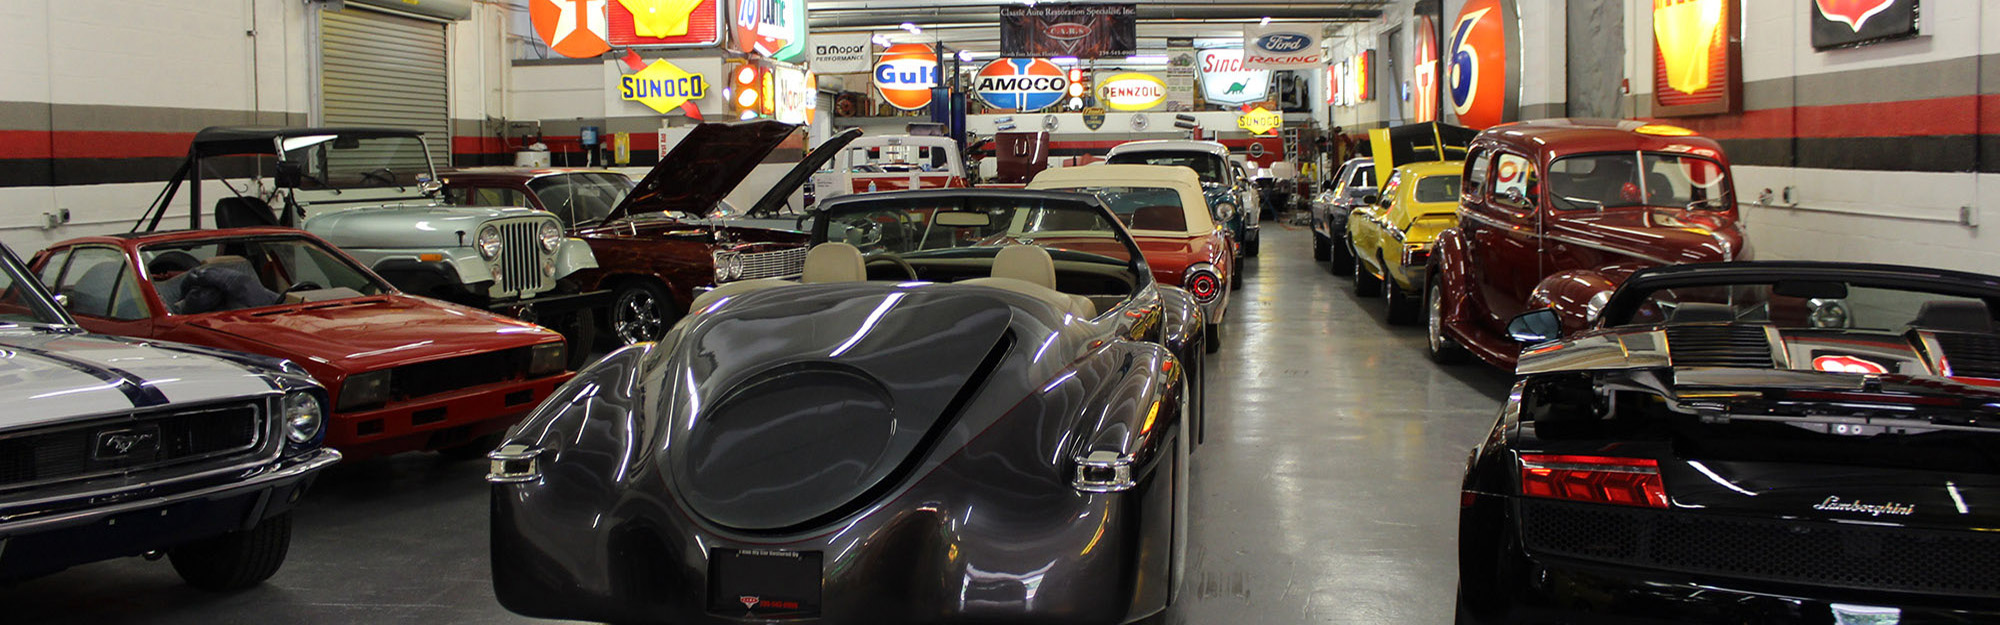 Cars-shop-homepage